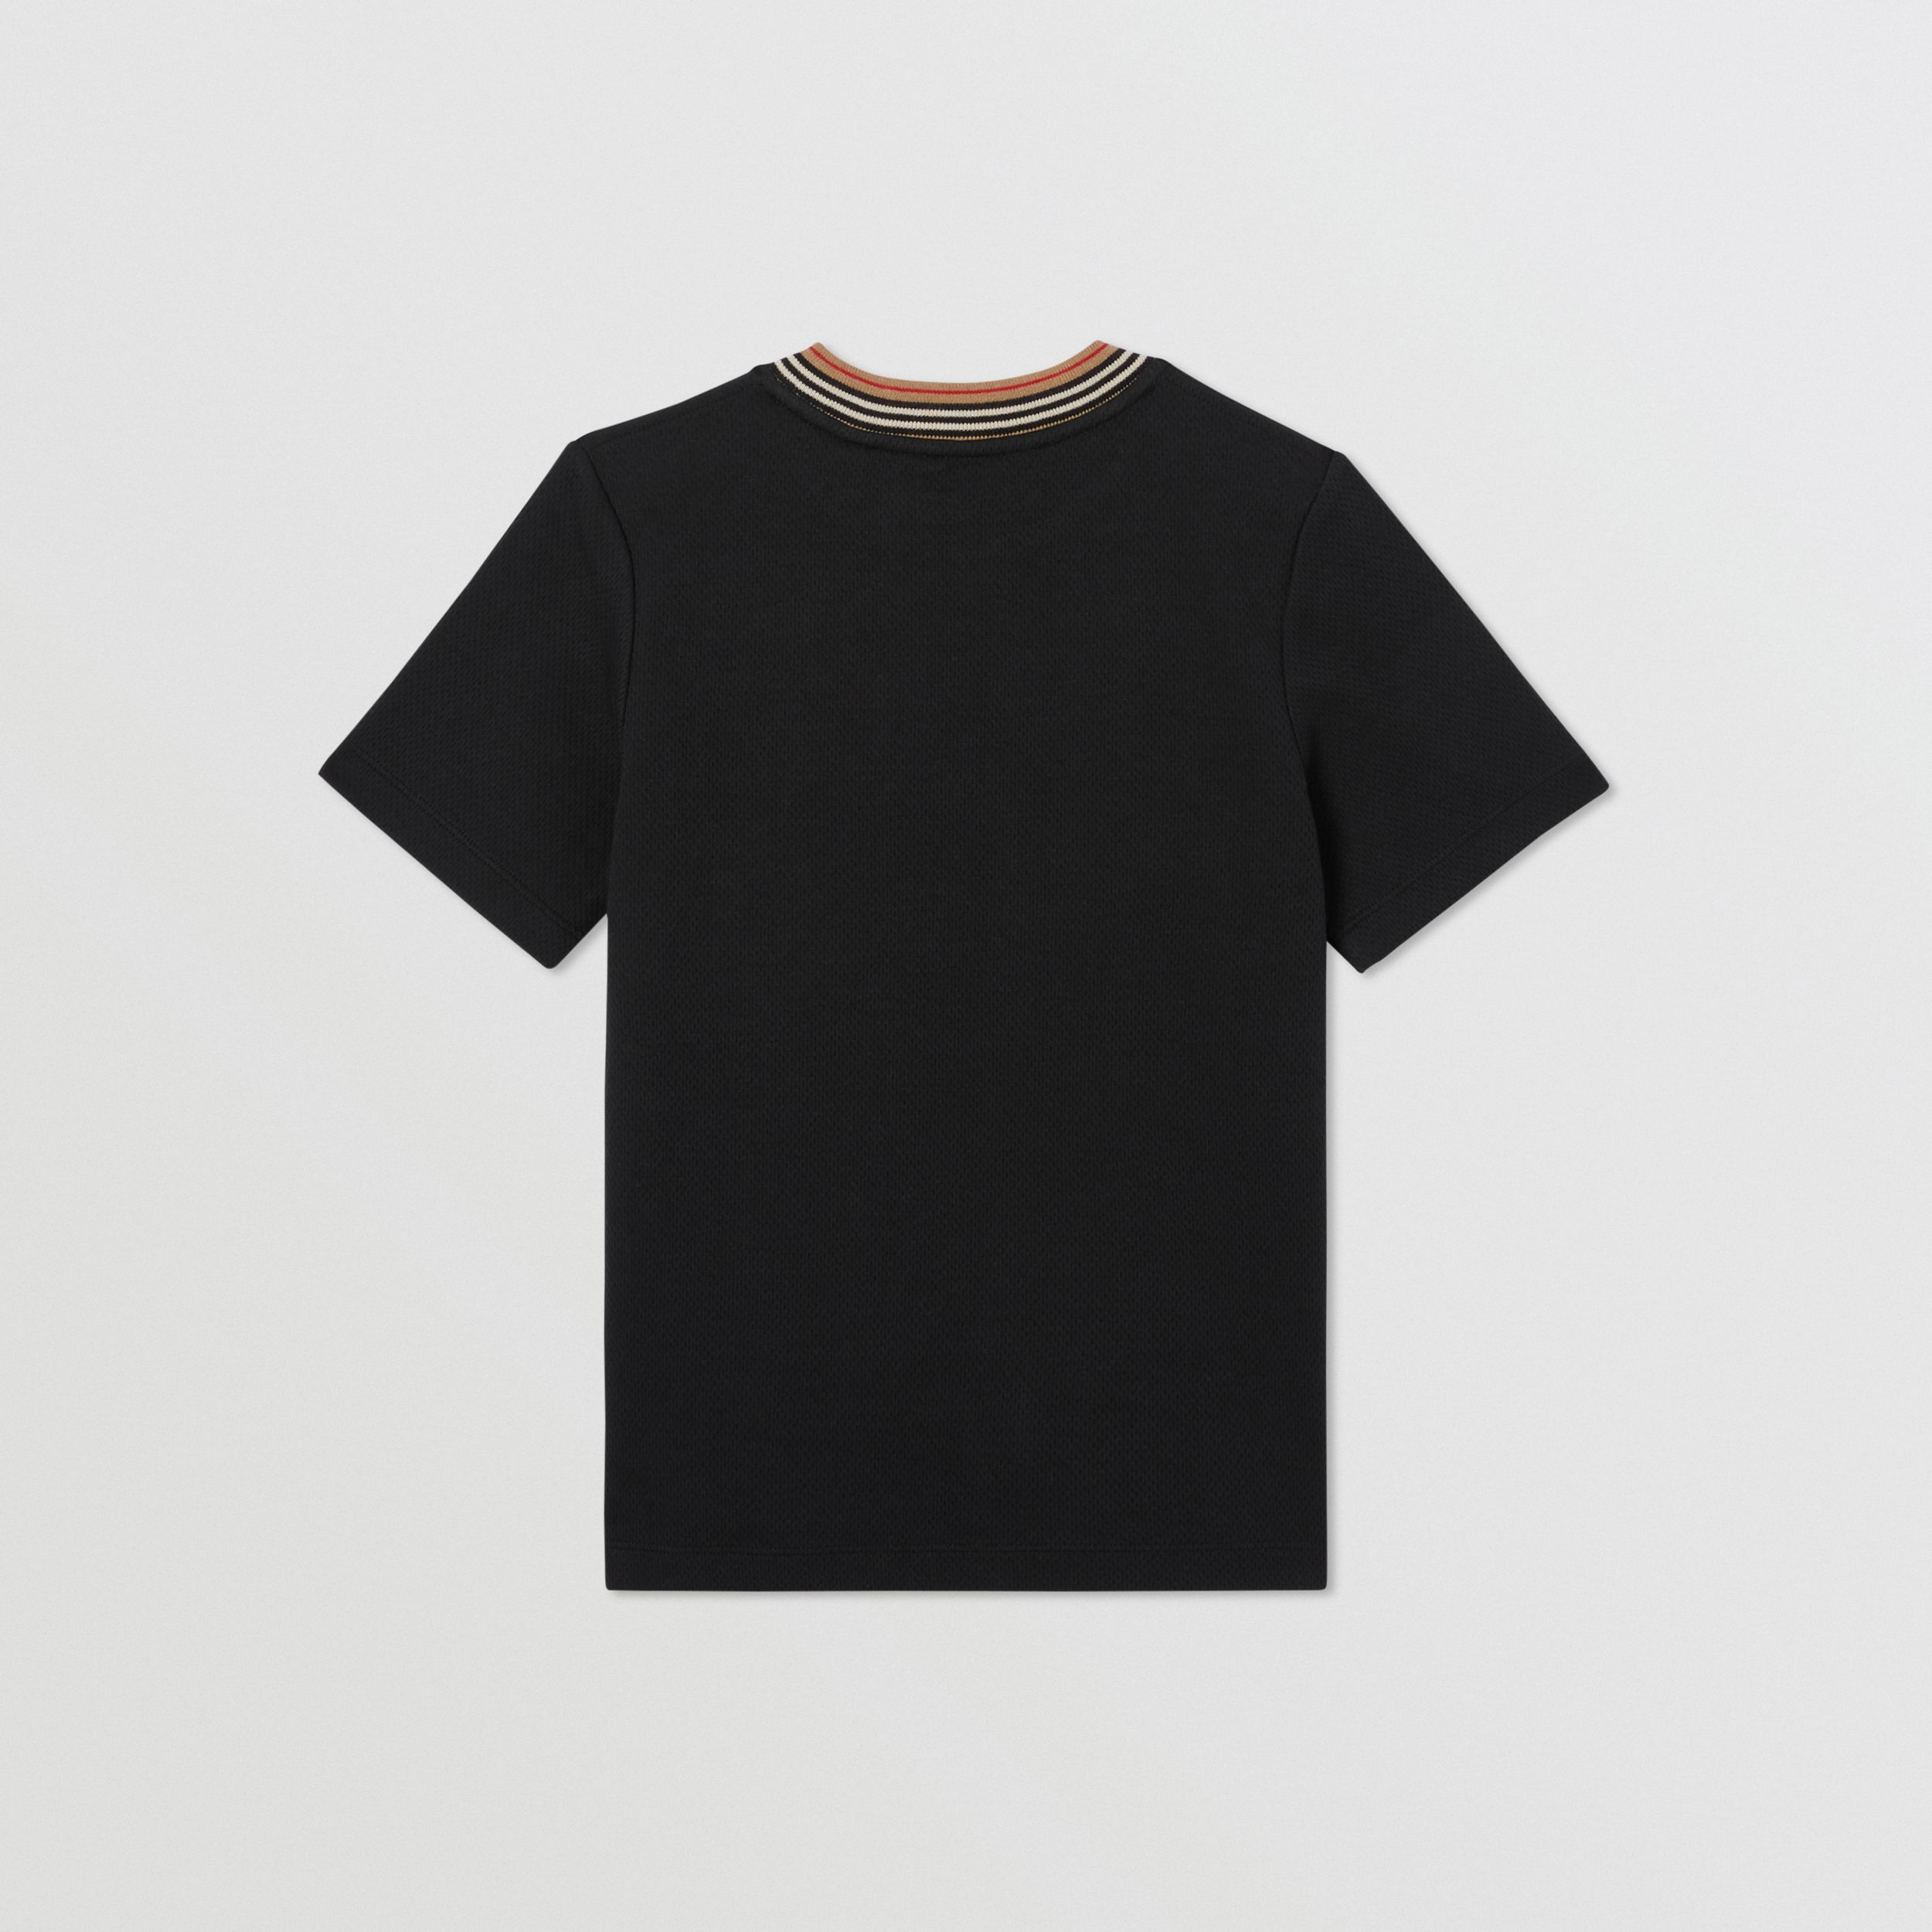 Contrast Logo Graphic Jersey Mesh T-shirt in Black | Burberry - 4